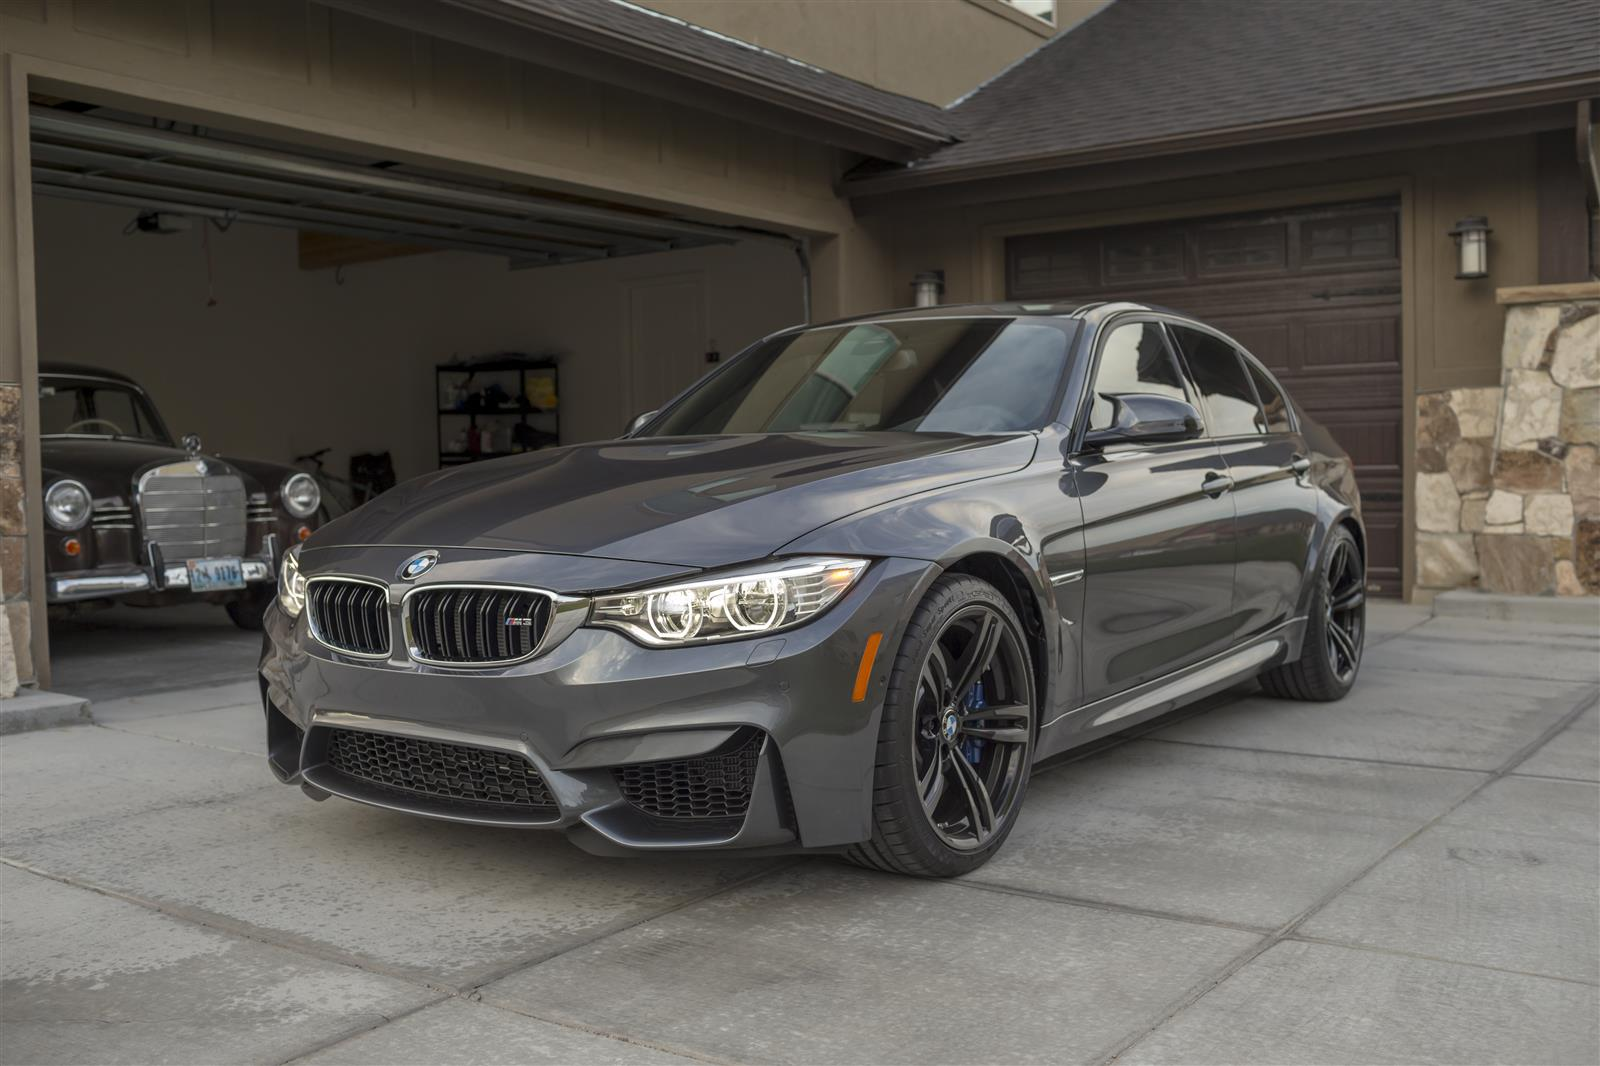 New Mineral Gray M3 Finally Here